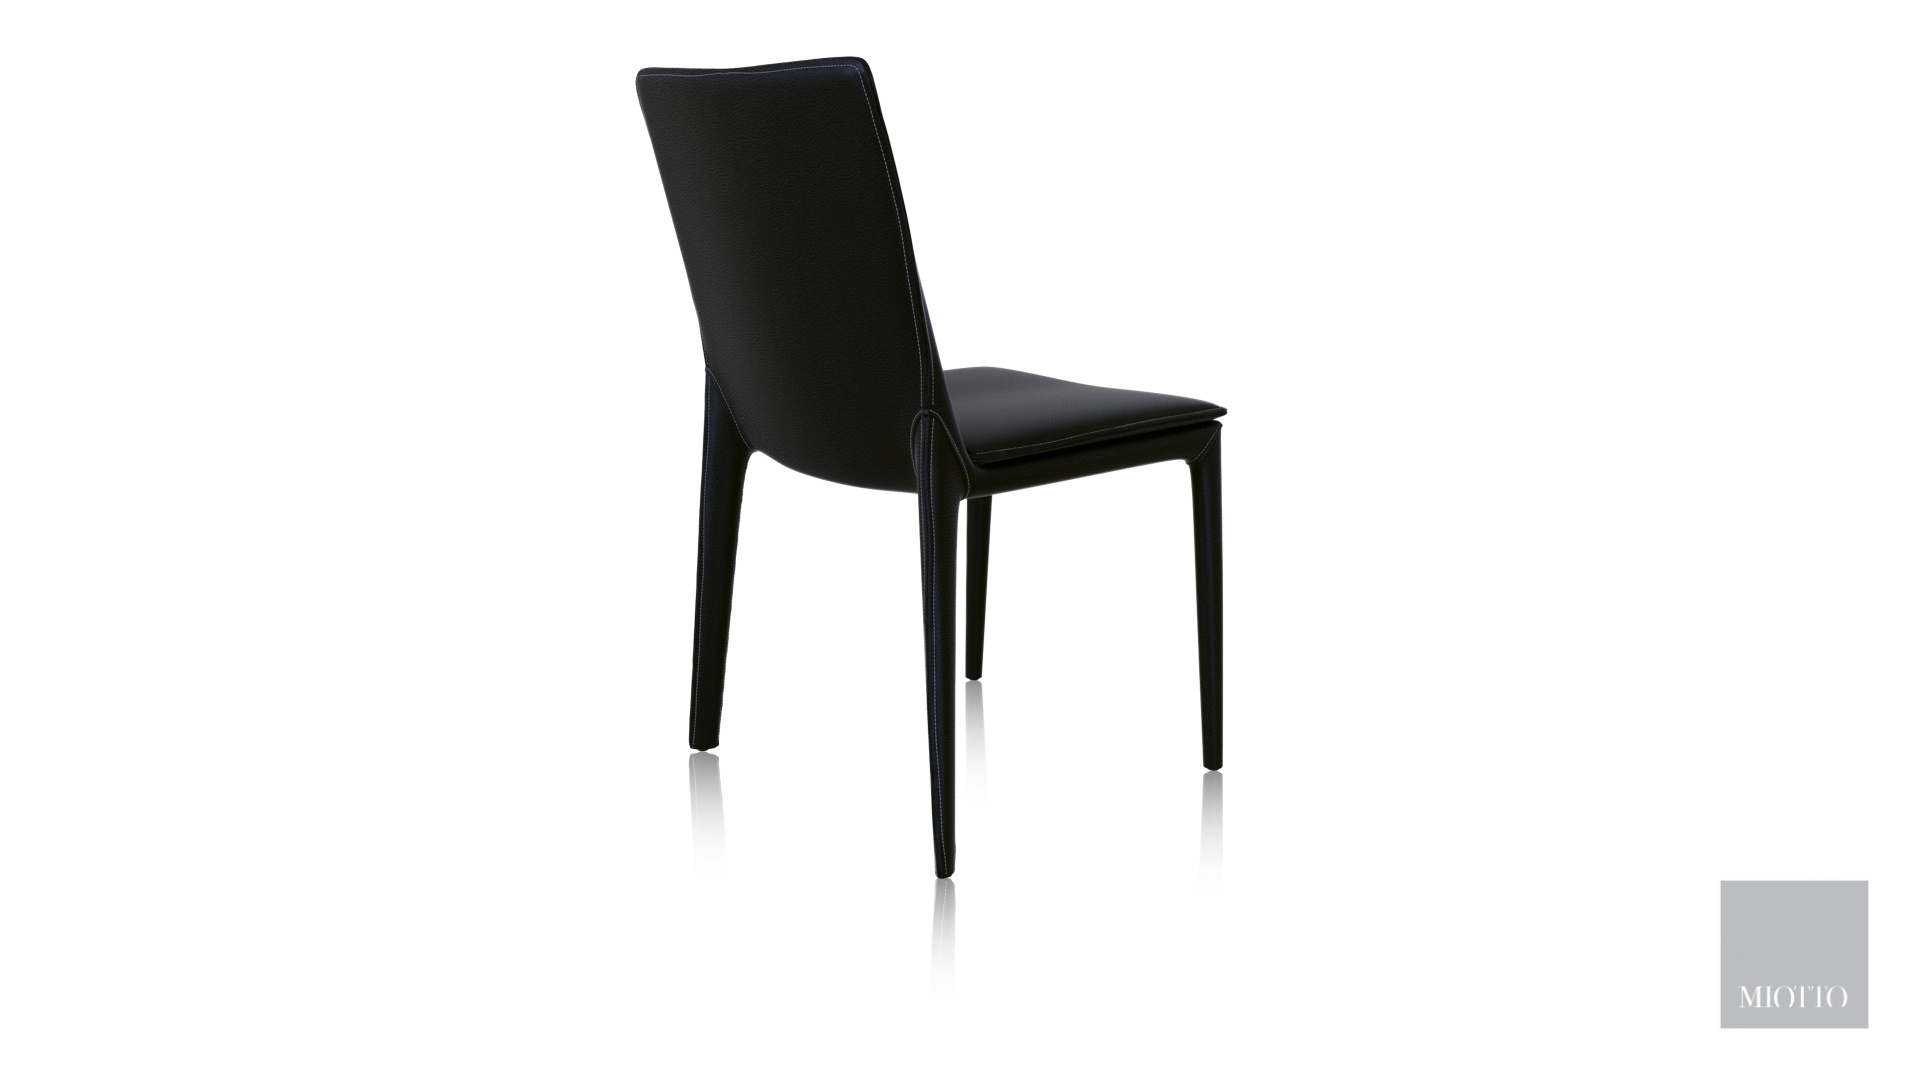 miotto_torano DC back black T miotto dining chair furniture